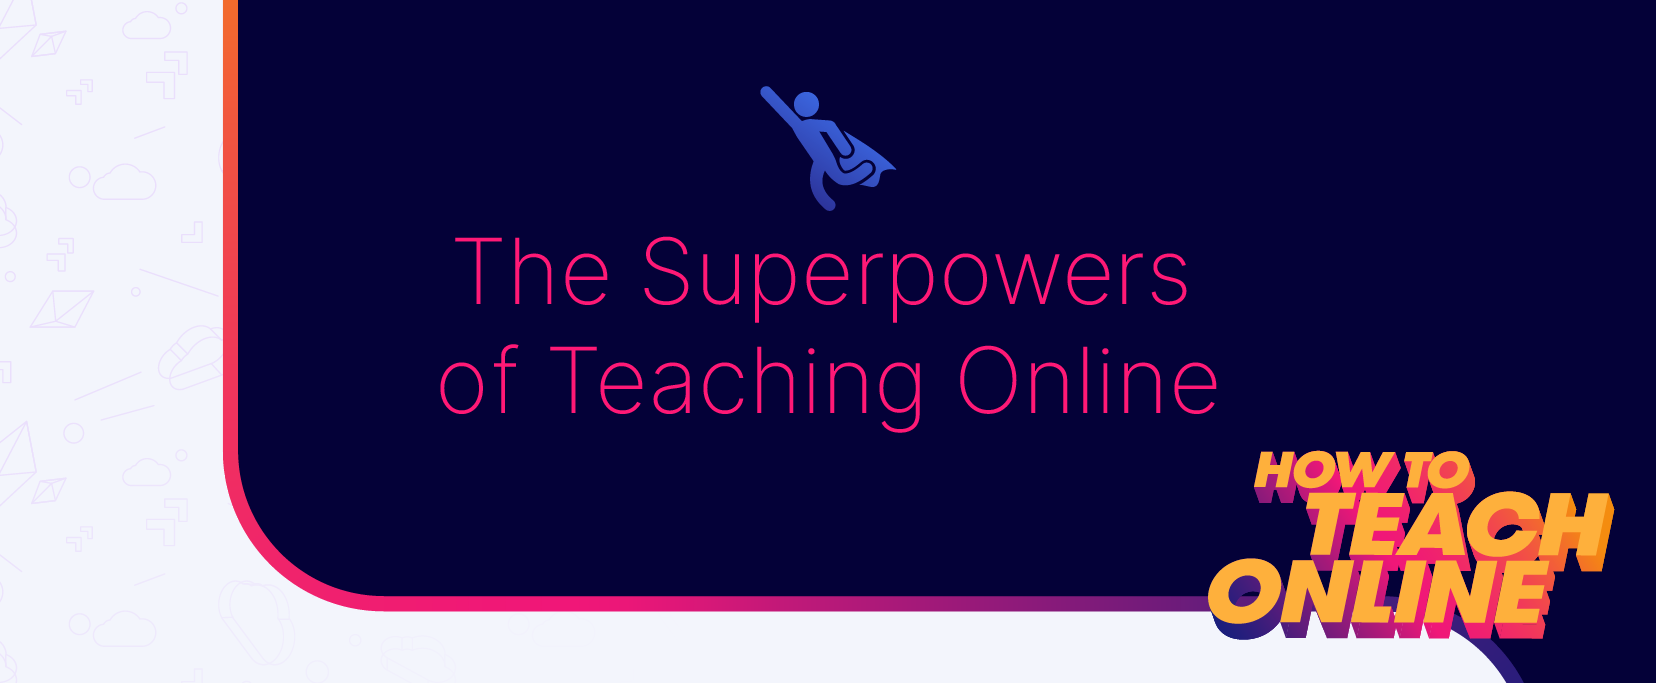 How to teach online - the superpowers of teaching online